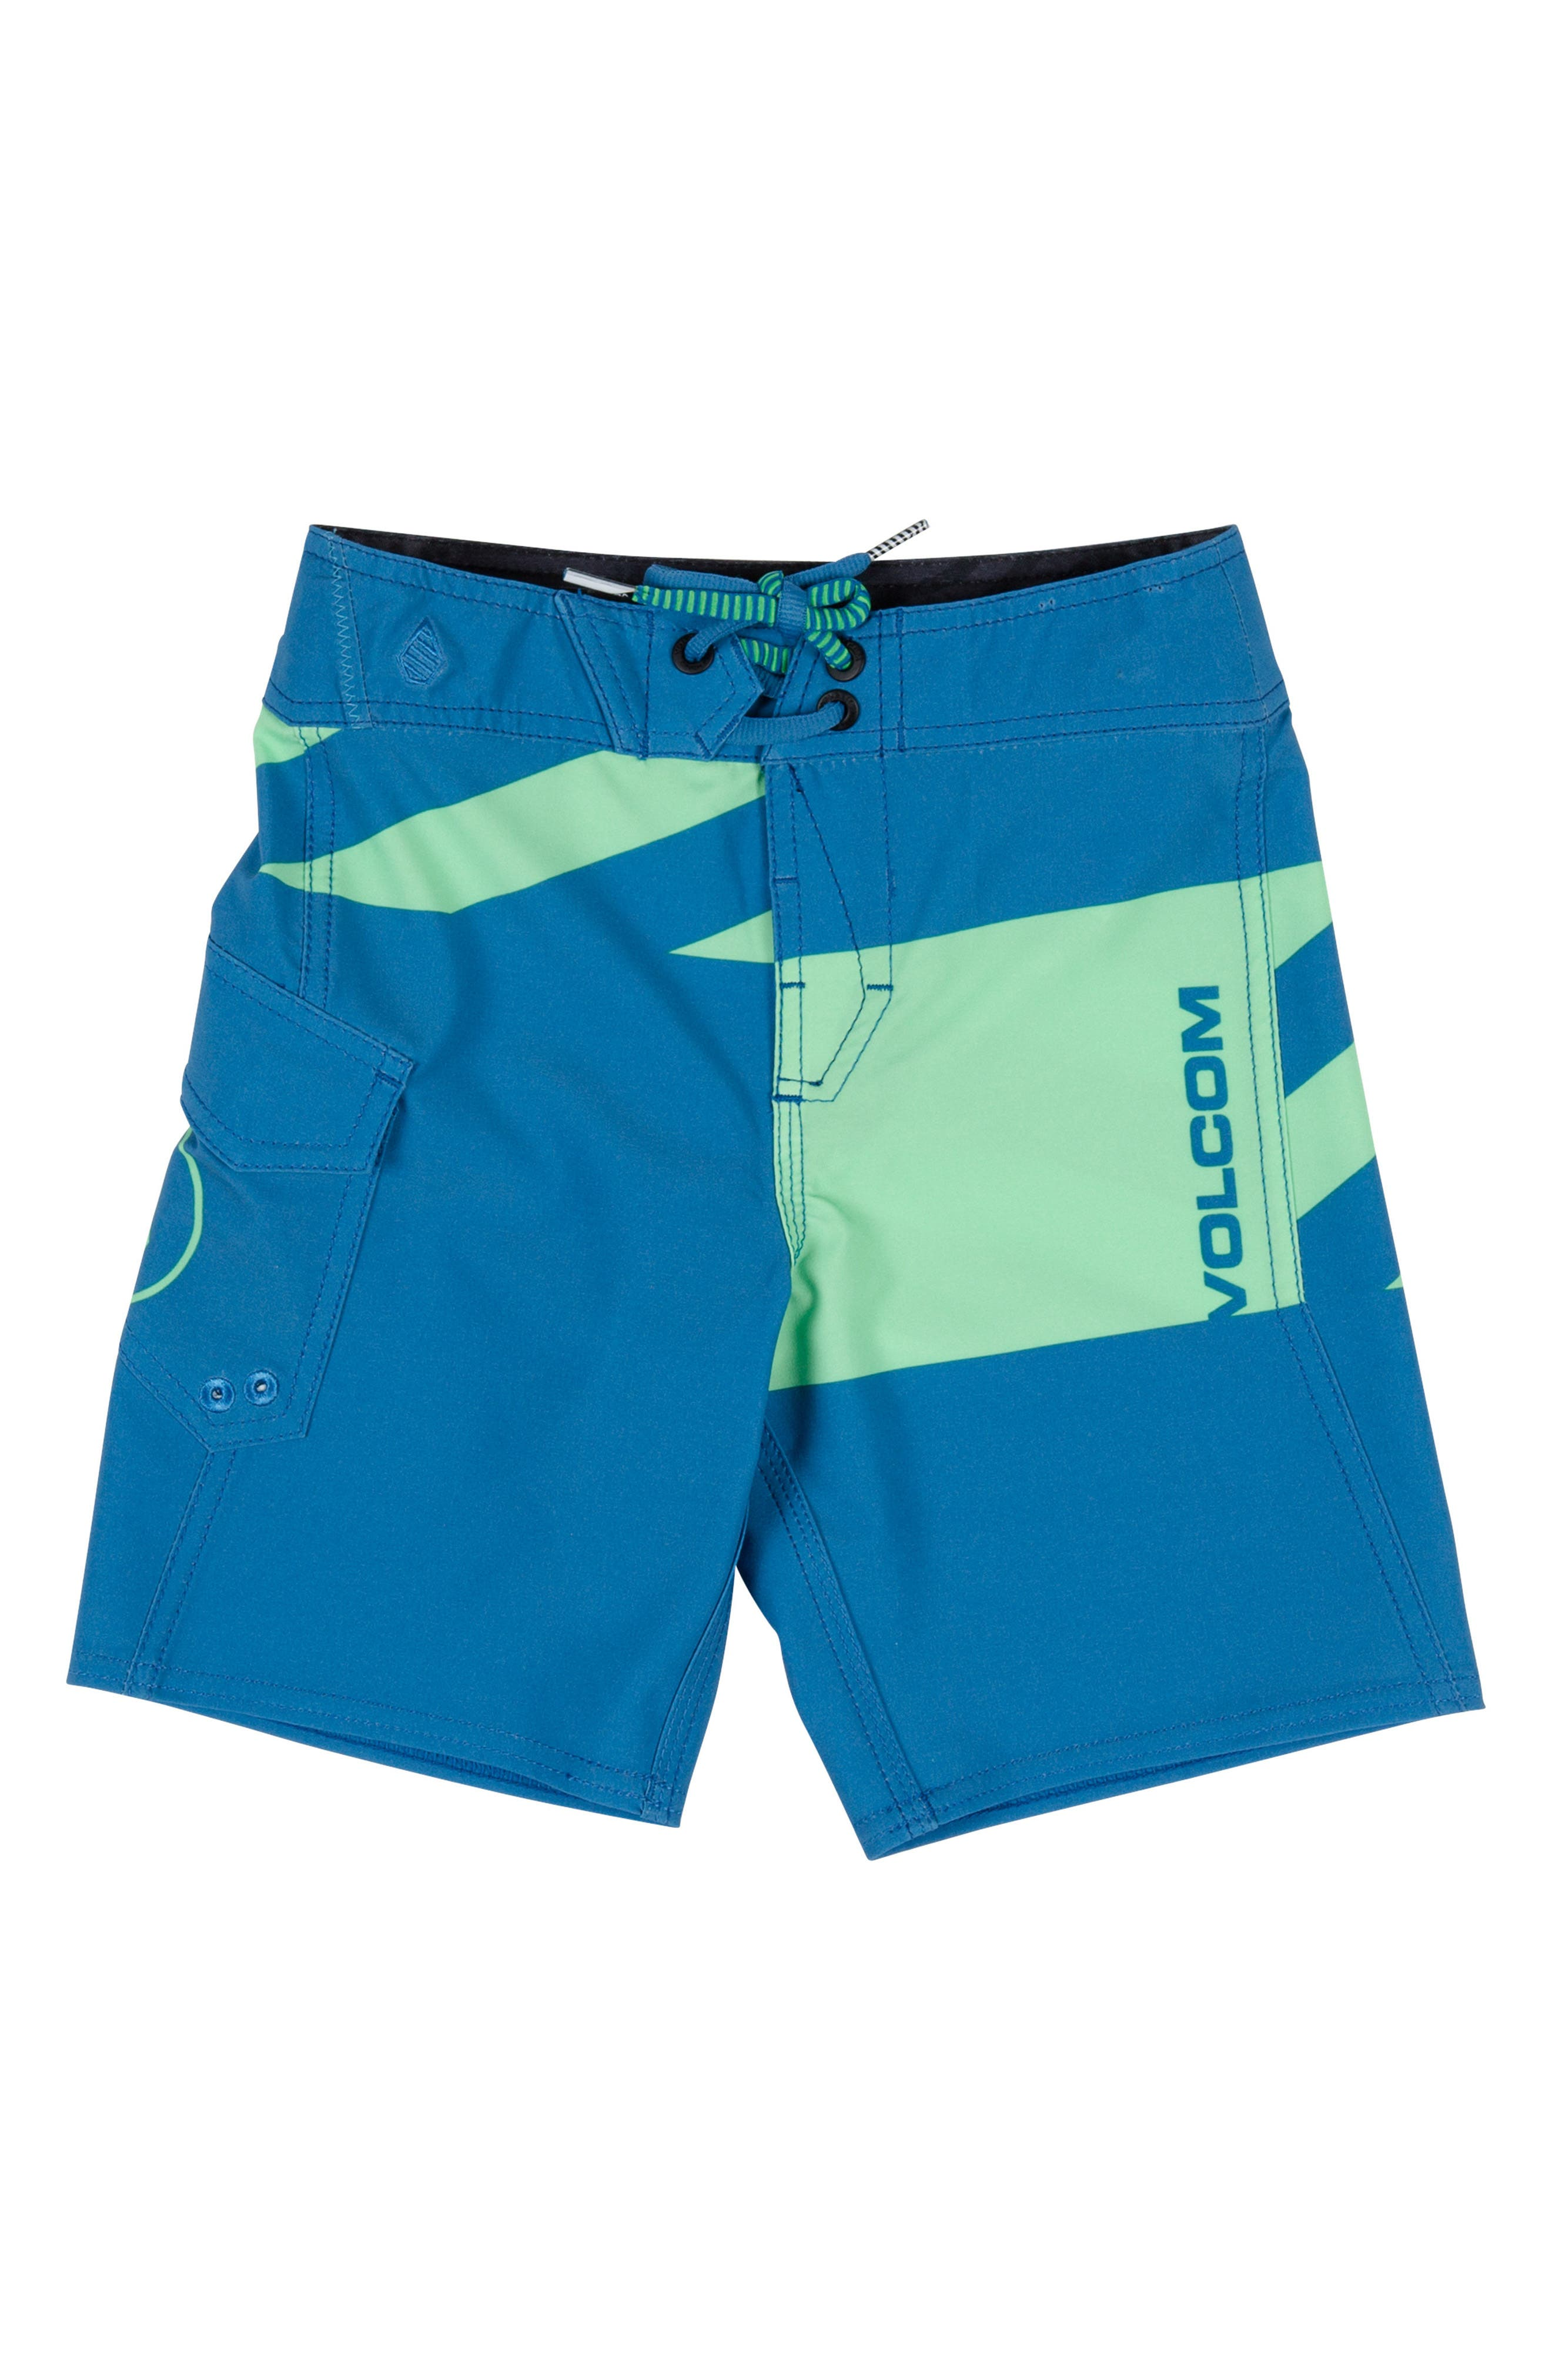 Logo Party Pack Mod Board Shorts,                             Alternate thumbnail 4, color,